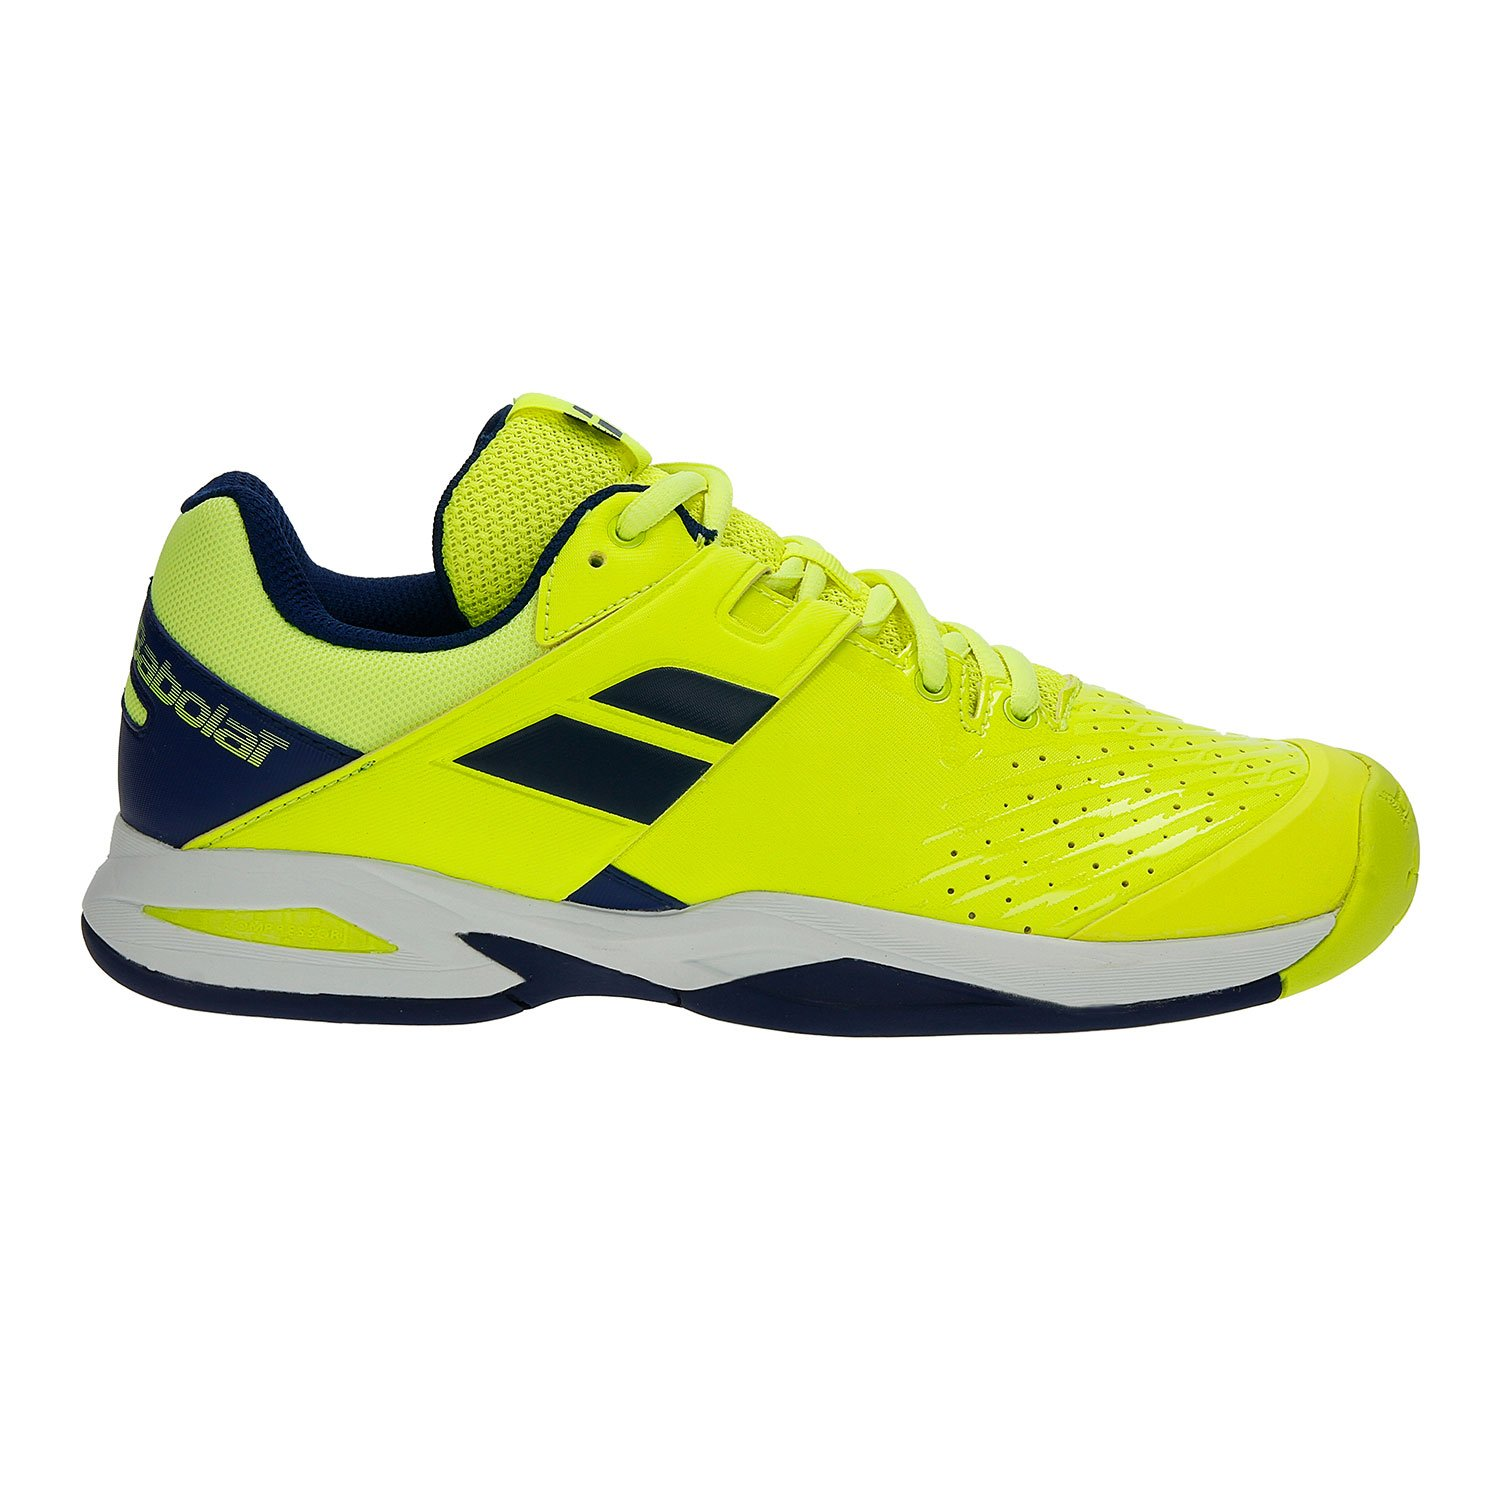 Babolat Kid's Propulse Fury All Court Junior Tennis Shoes B079FH5ST8 2 M US Little Kid|Fluo Yellow/Estate Blue